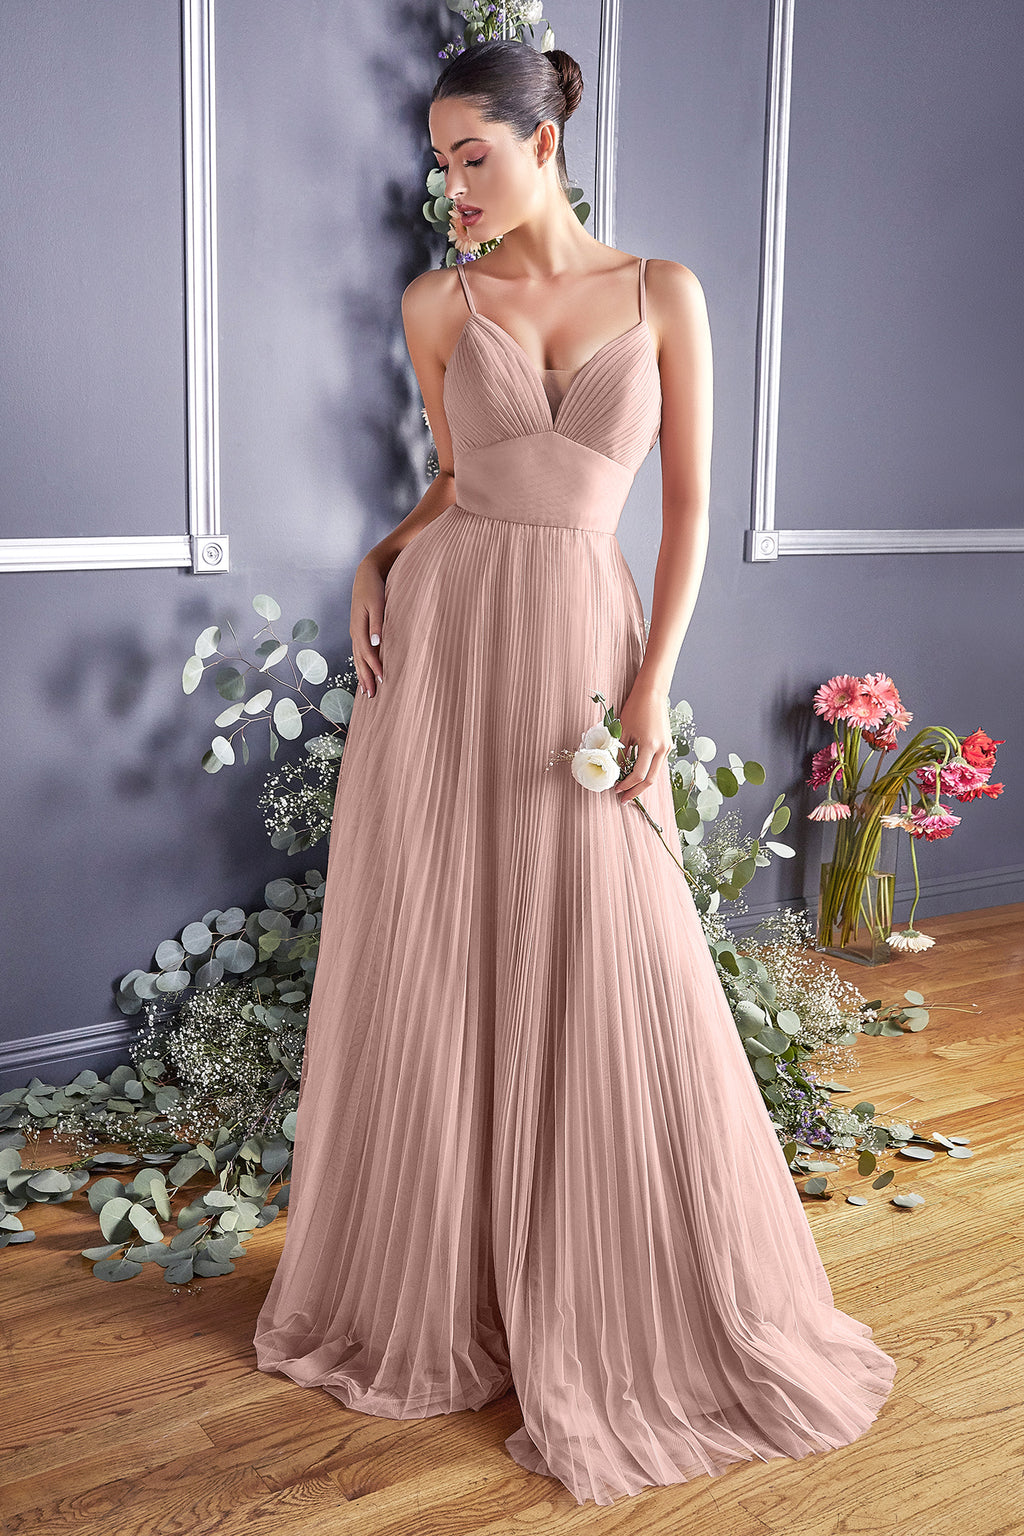 Elegant Long Gown with Deep Neckline and Pleated Long Skirt (SIZES 11-17) #CDCD184